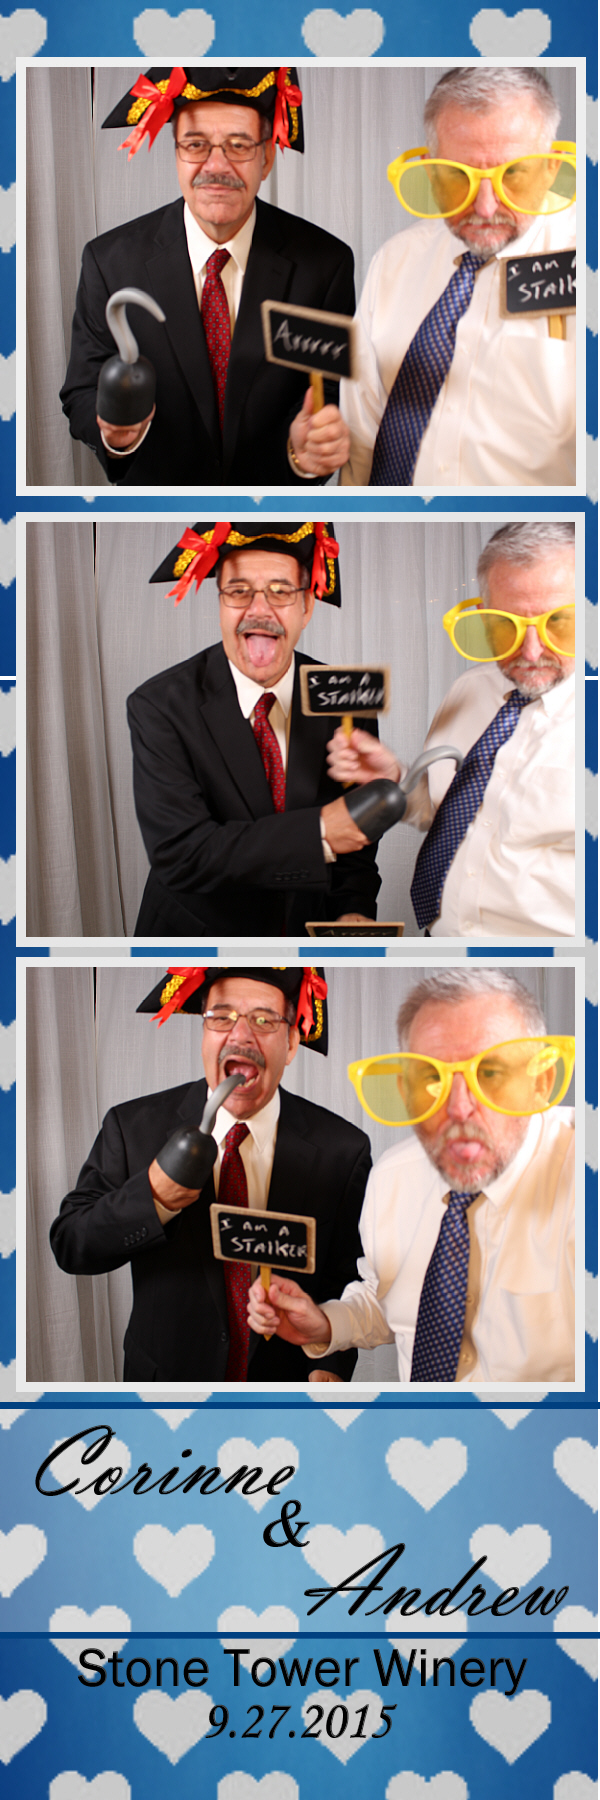 Guest House Events Photo Booth C&A (13).jpg